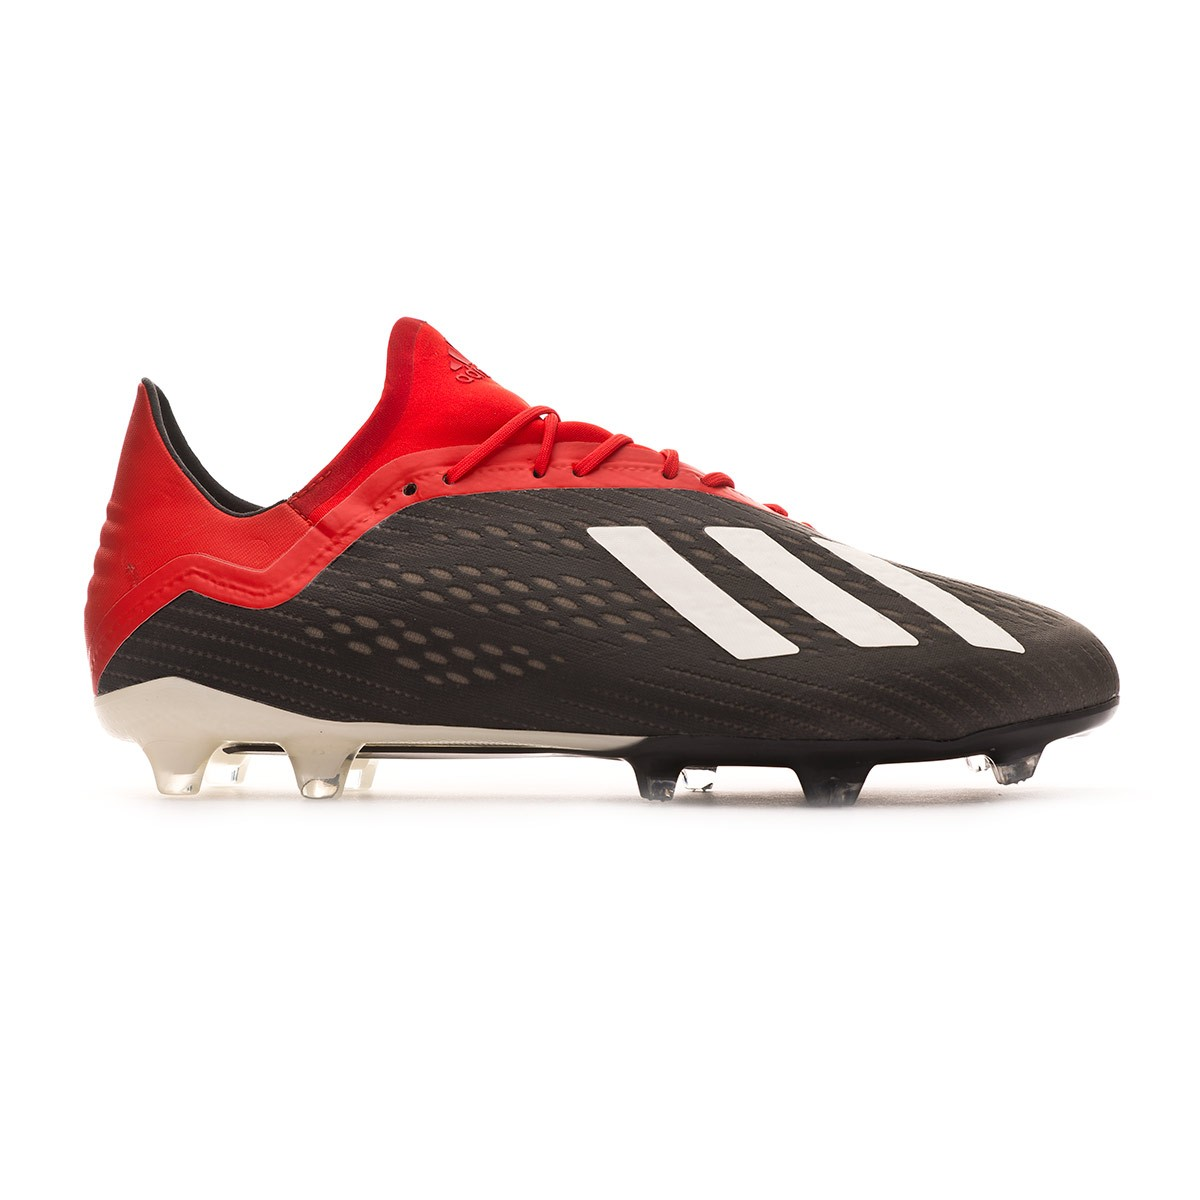 88023cdc3e7 Chuteira adidas X 18.2 FG Core black-Off white-Active red - Loja de futebol  Fútbol Emotion